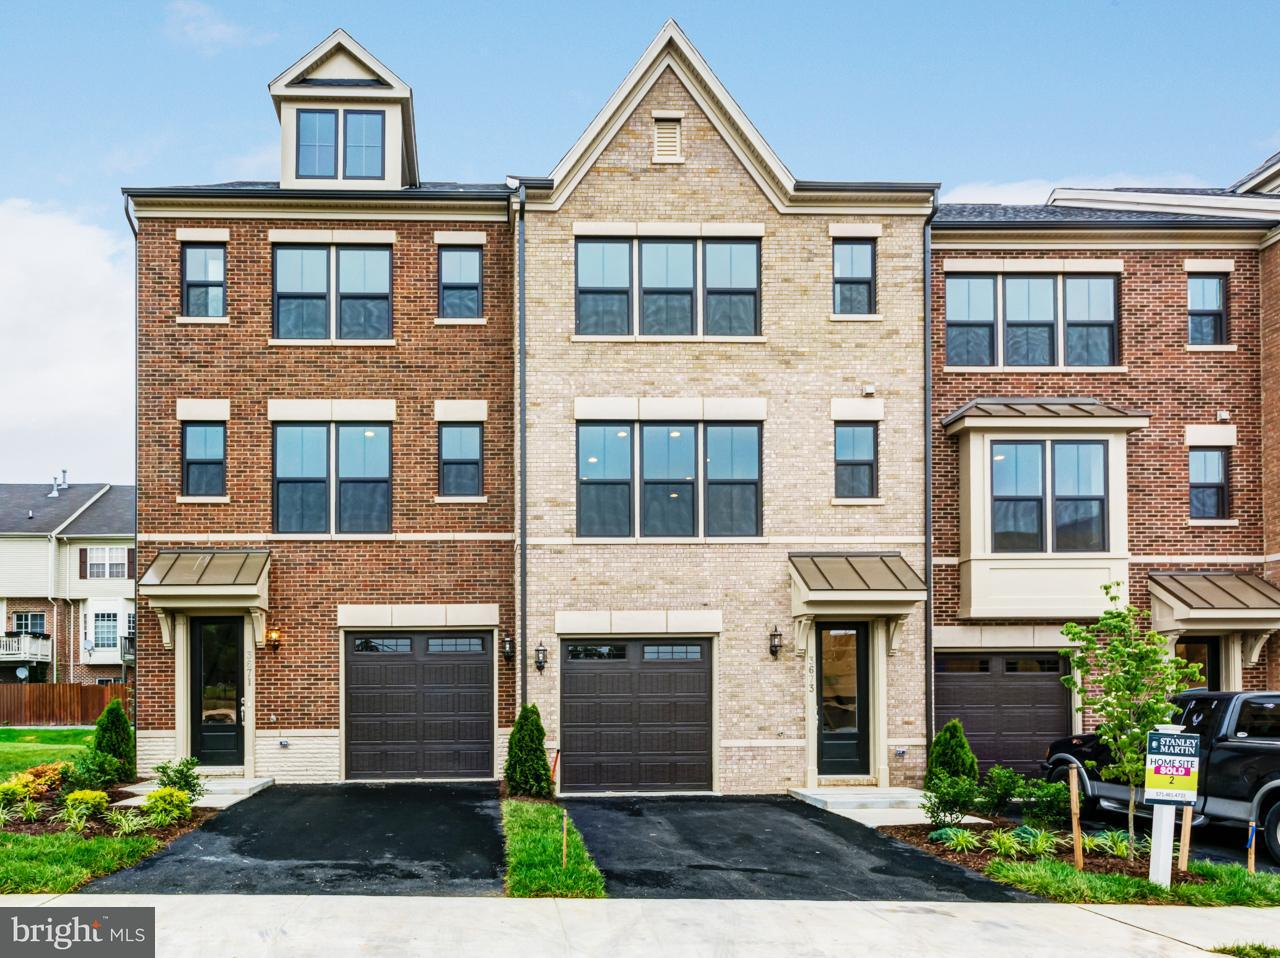 Townhouse for Sale at 3679 Ambrose Hills Road 3679 Ambrose Hills Road Falls Church, Virginia 22041 United States